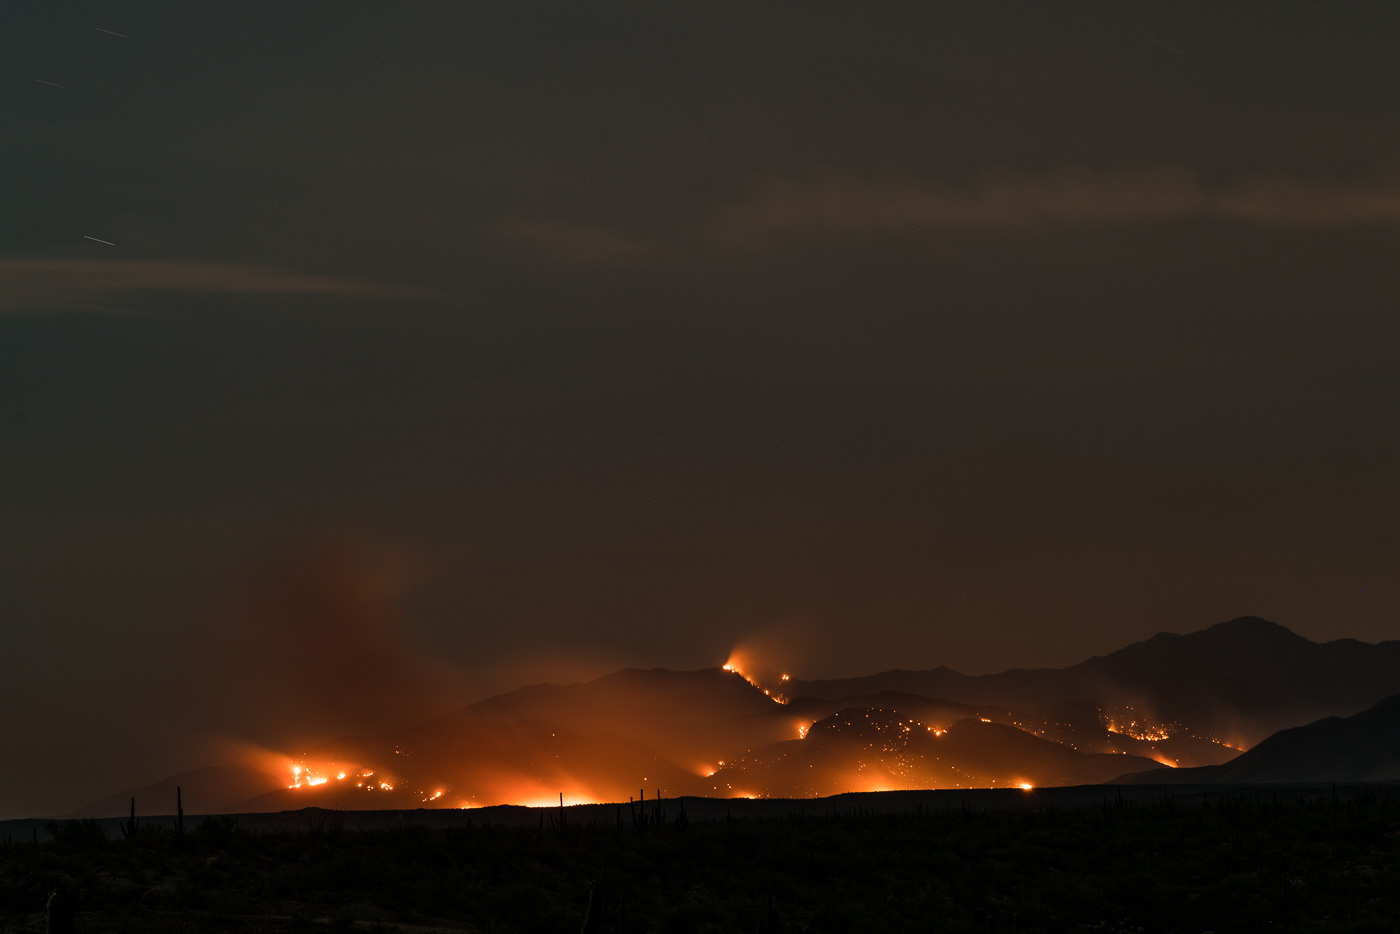 Evans Mountain and the slopes below burning in the Burro Fire on the night of the 5th. July 2017.